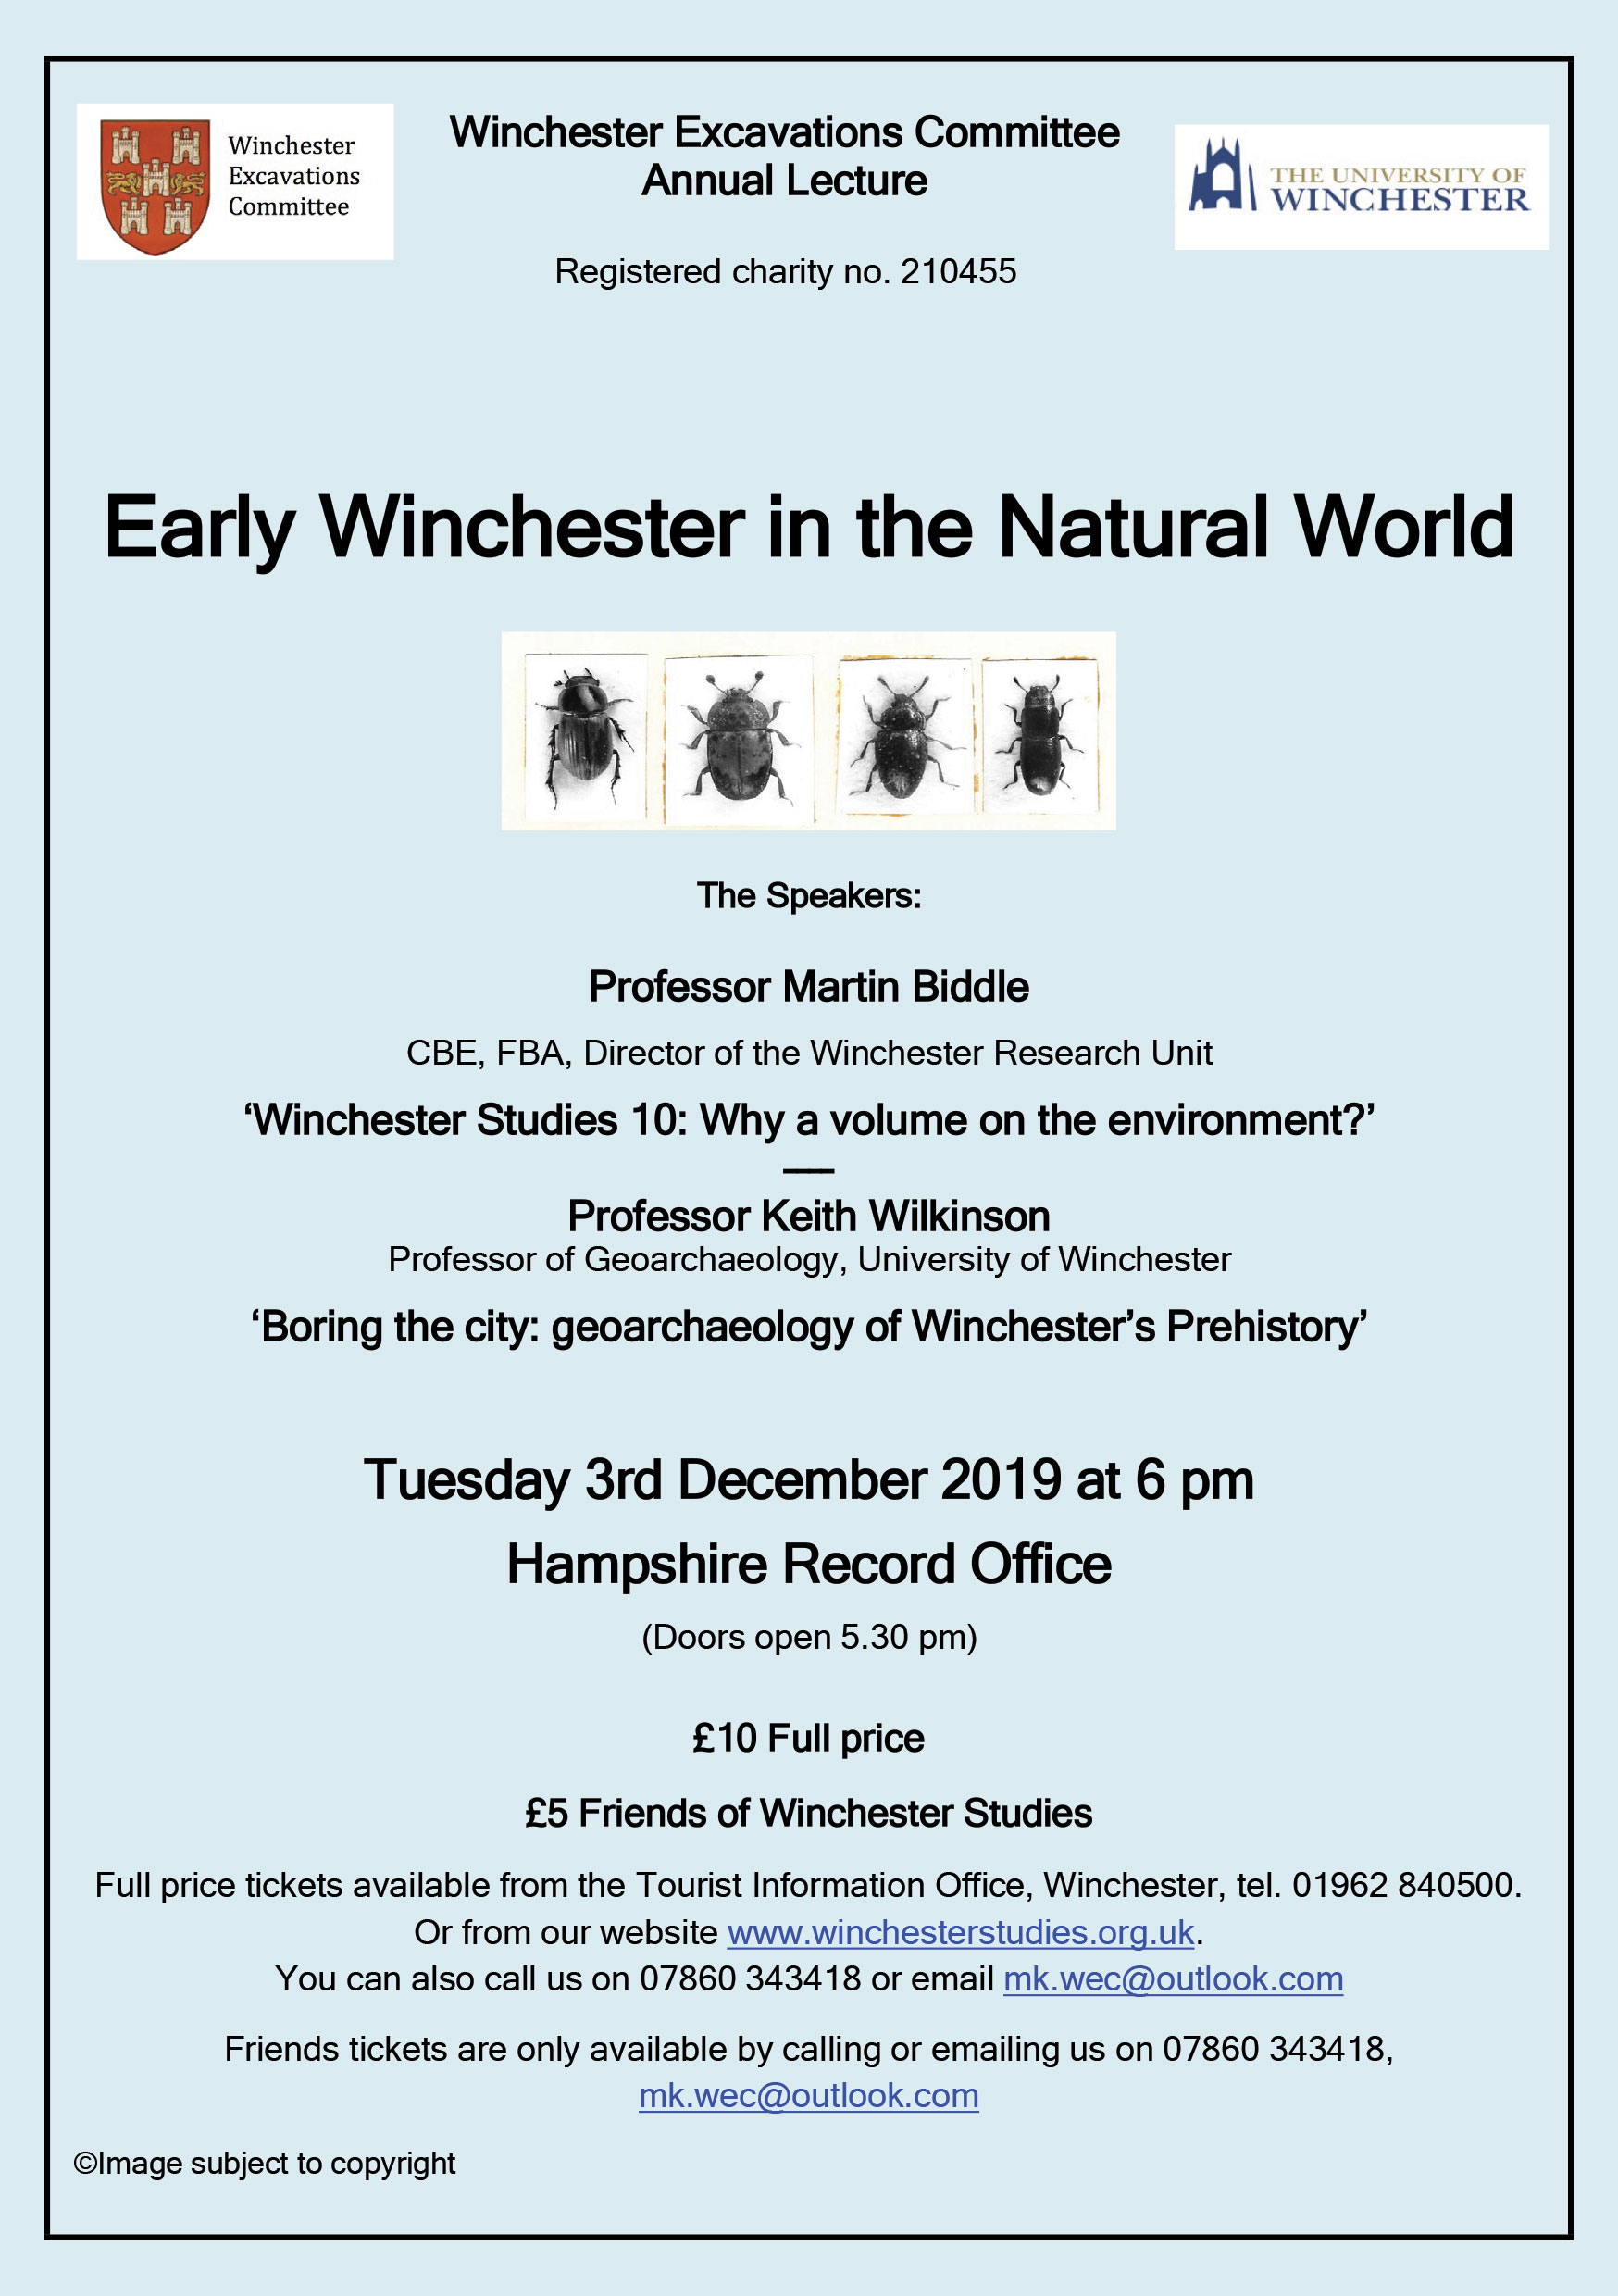 Winchester Excavations Committee Annual Lecture